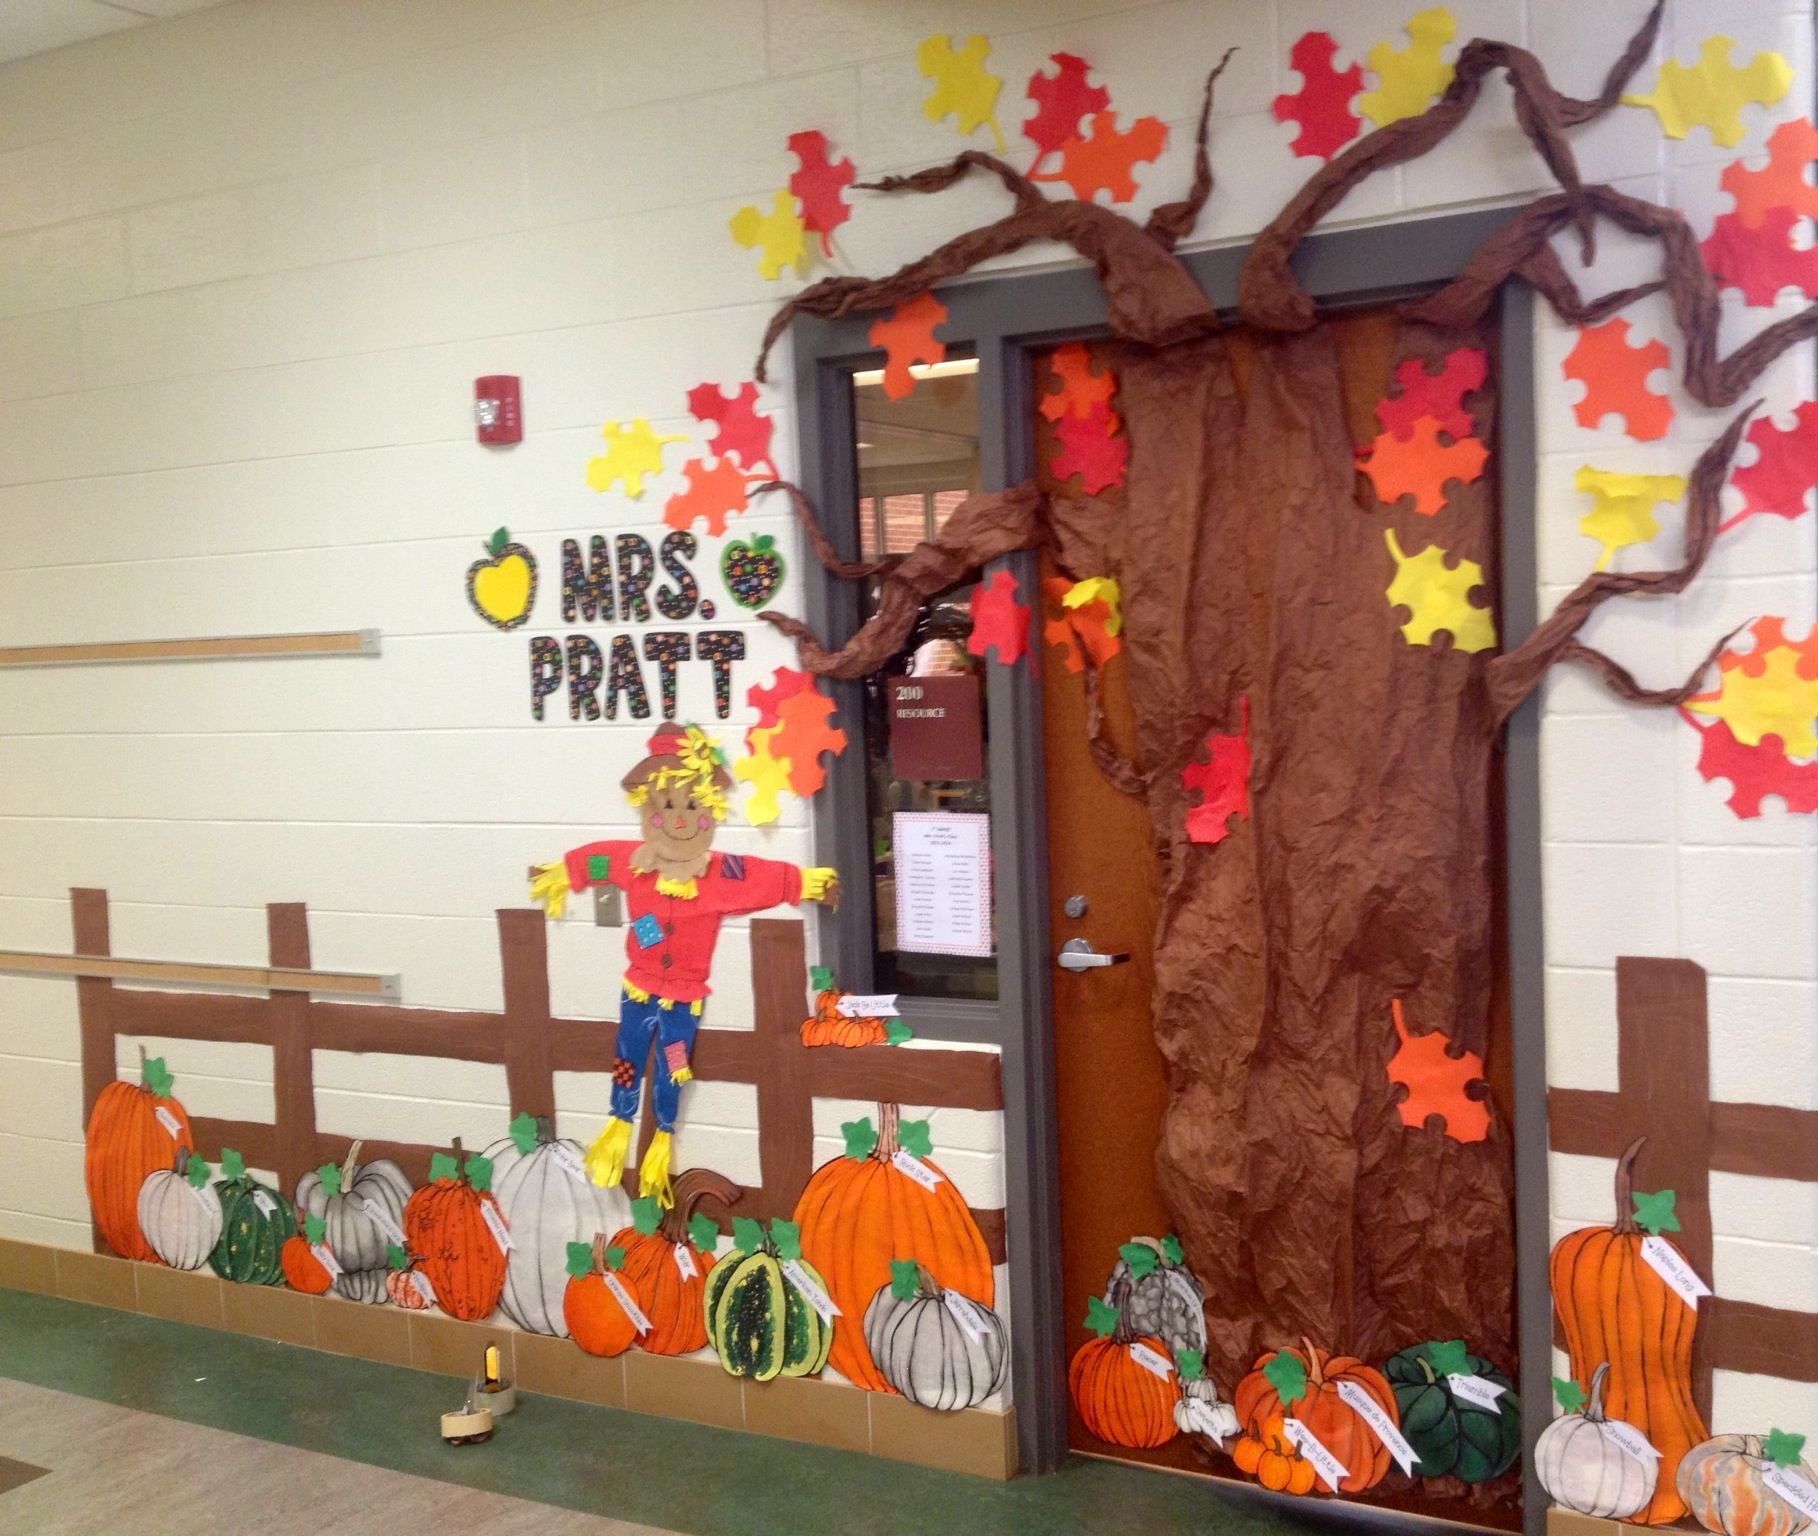 Pin By Krystle White On Crafts Fall Classroom Decorations Door Decorations Classroom Fall Classroom Decorations Ideas